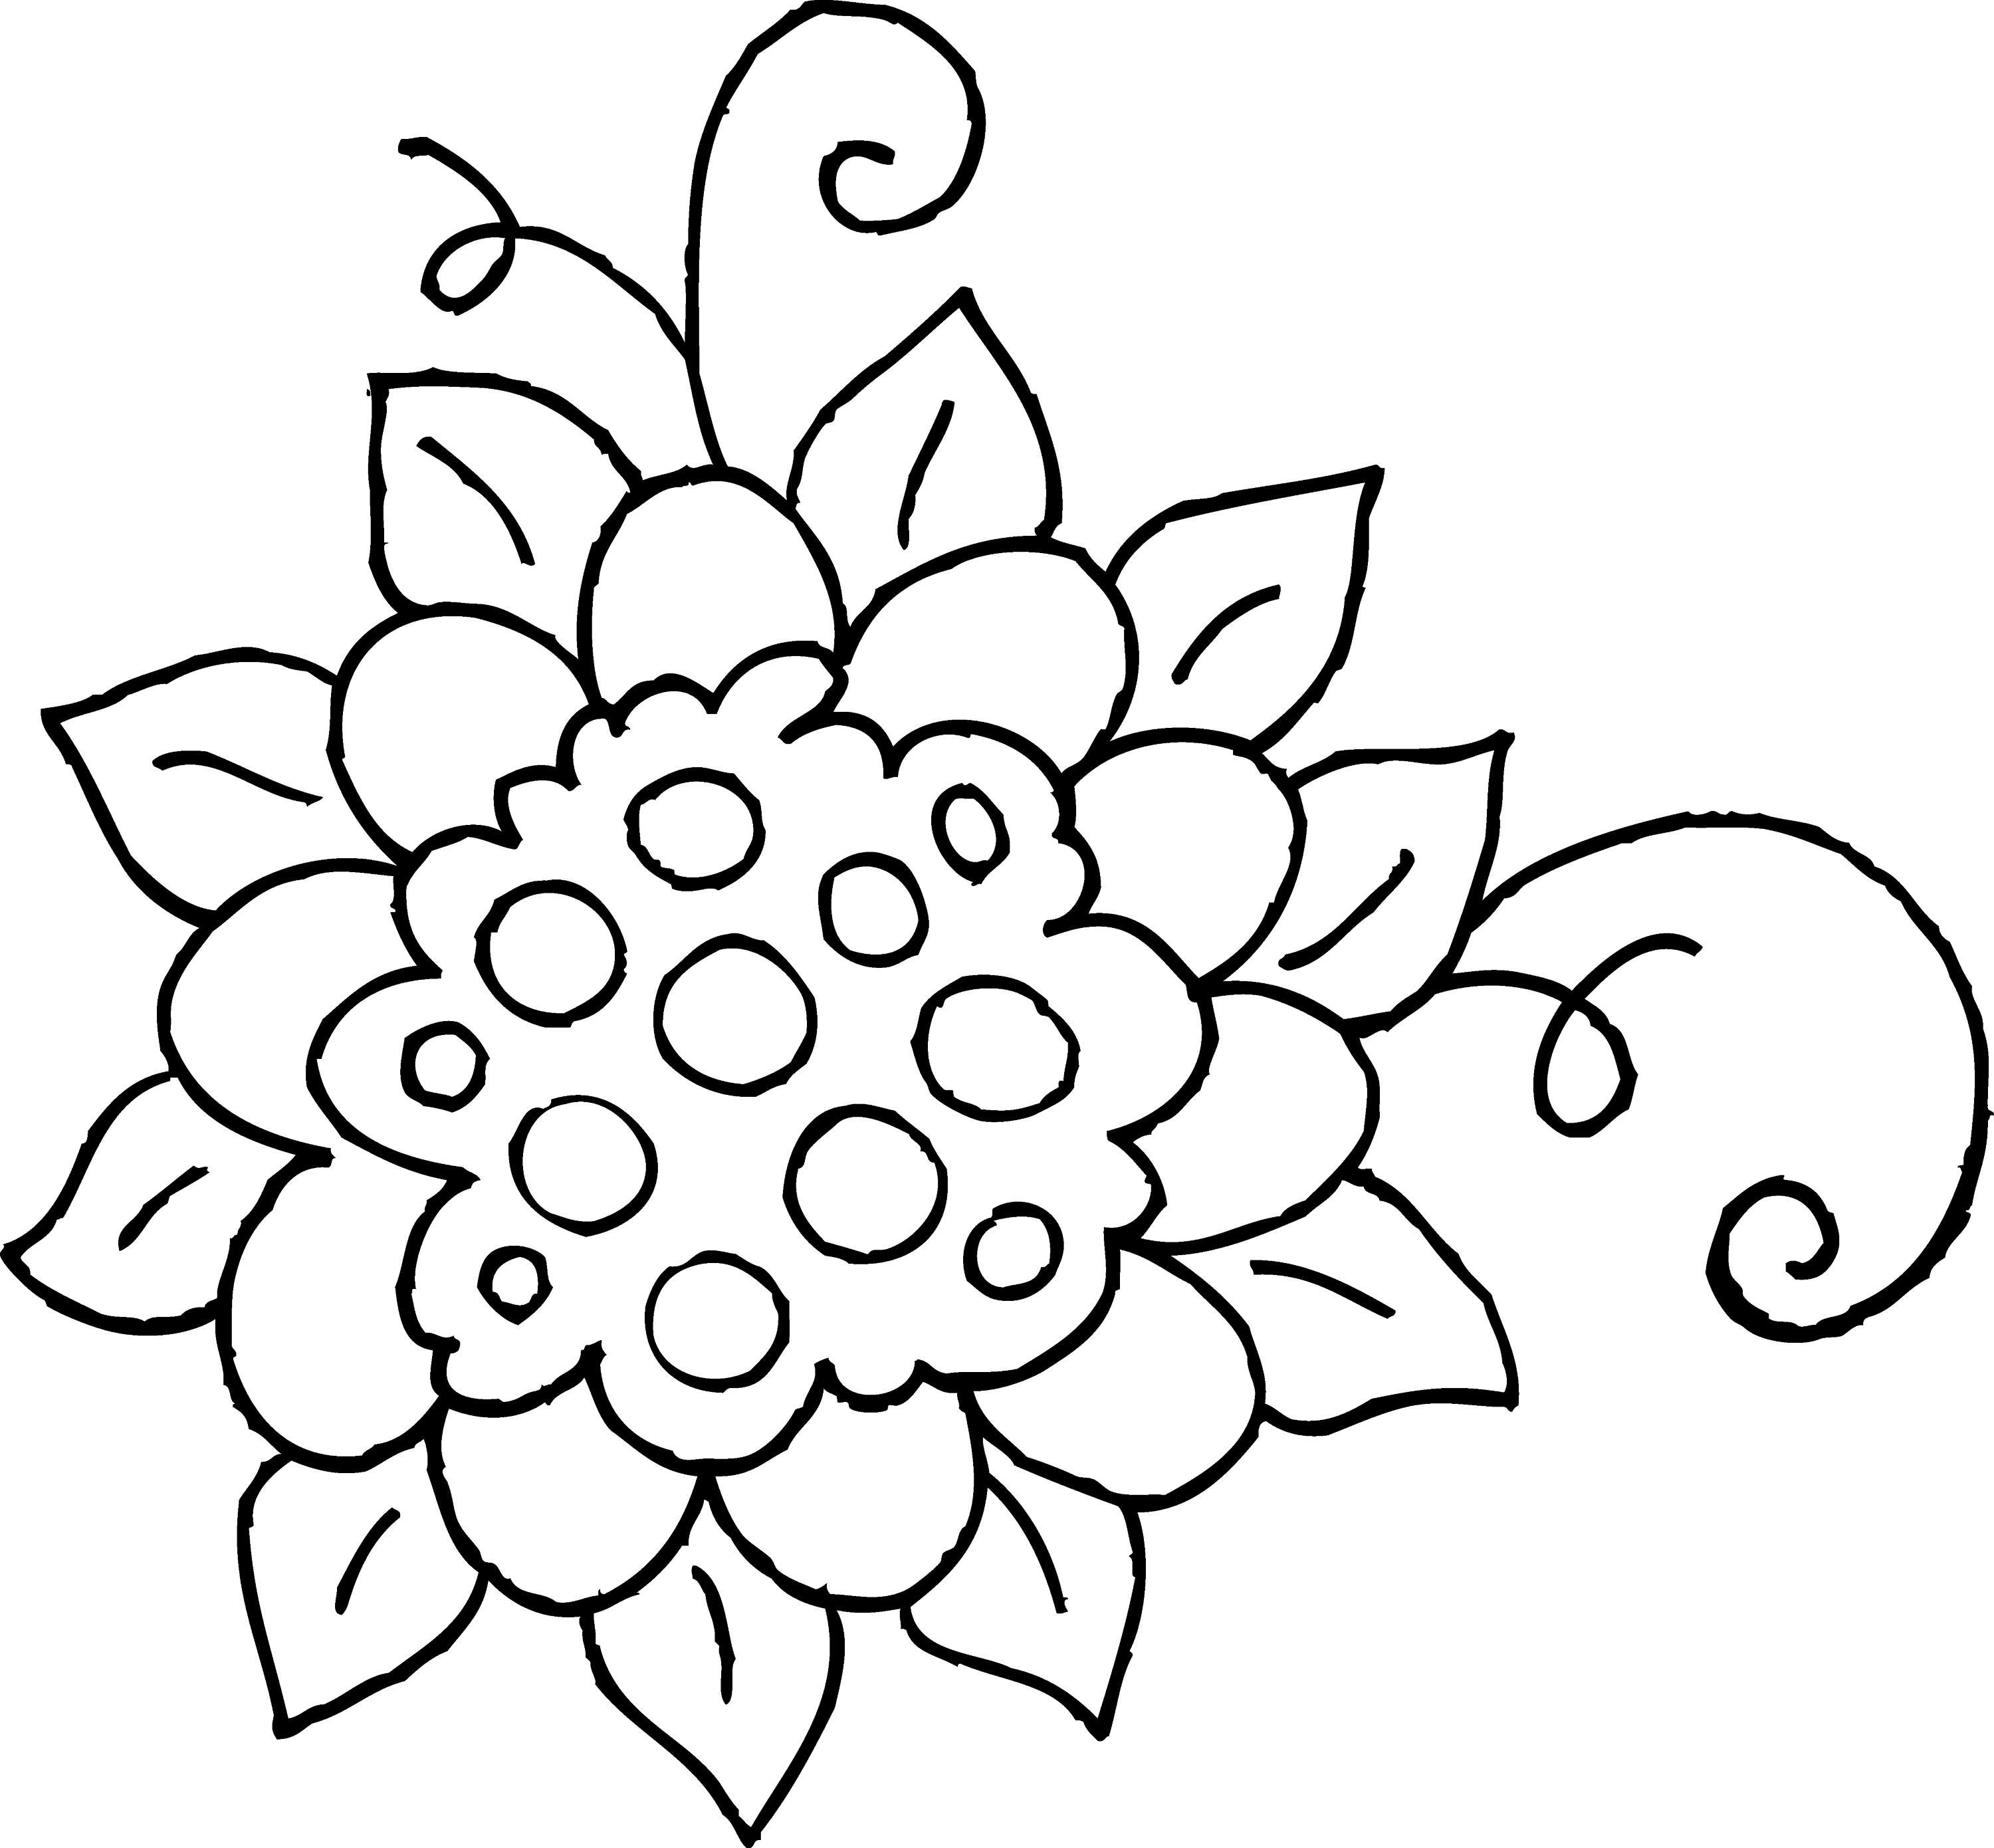 cute flower coloring pages cute spring flower coloring page 1 free clip art cute flower pages coloring